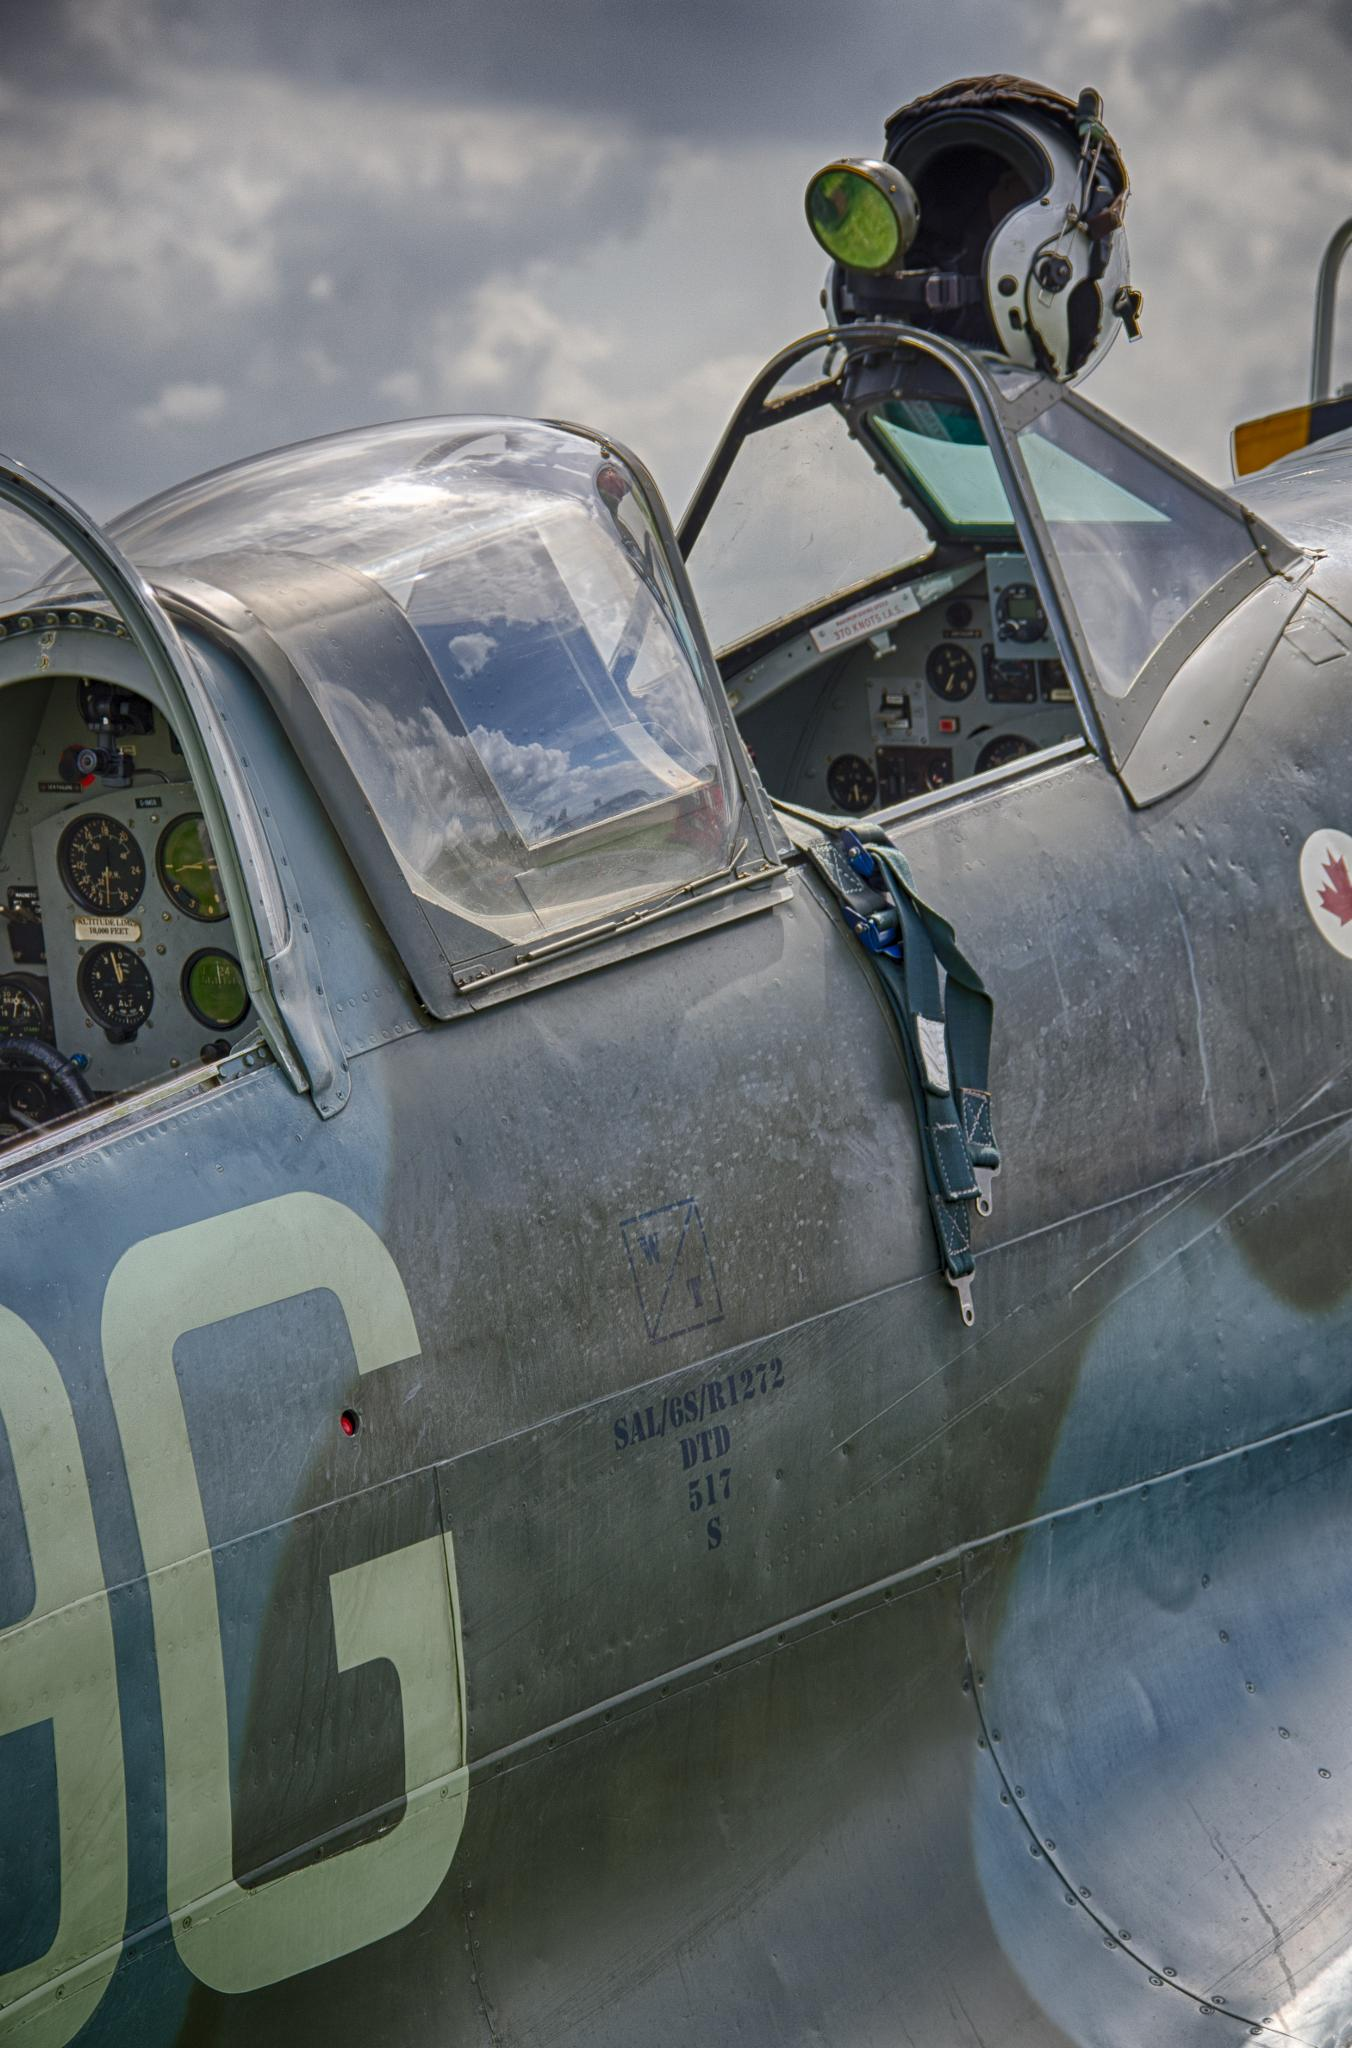 Spitfire at Rest by Norman3384